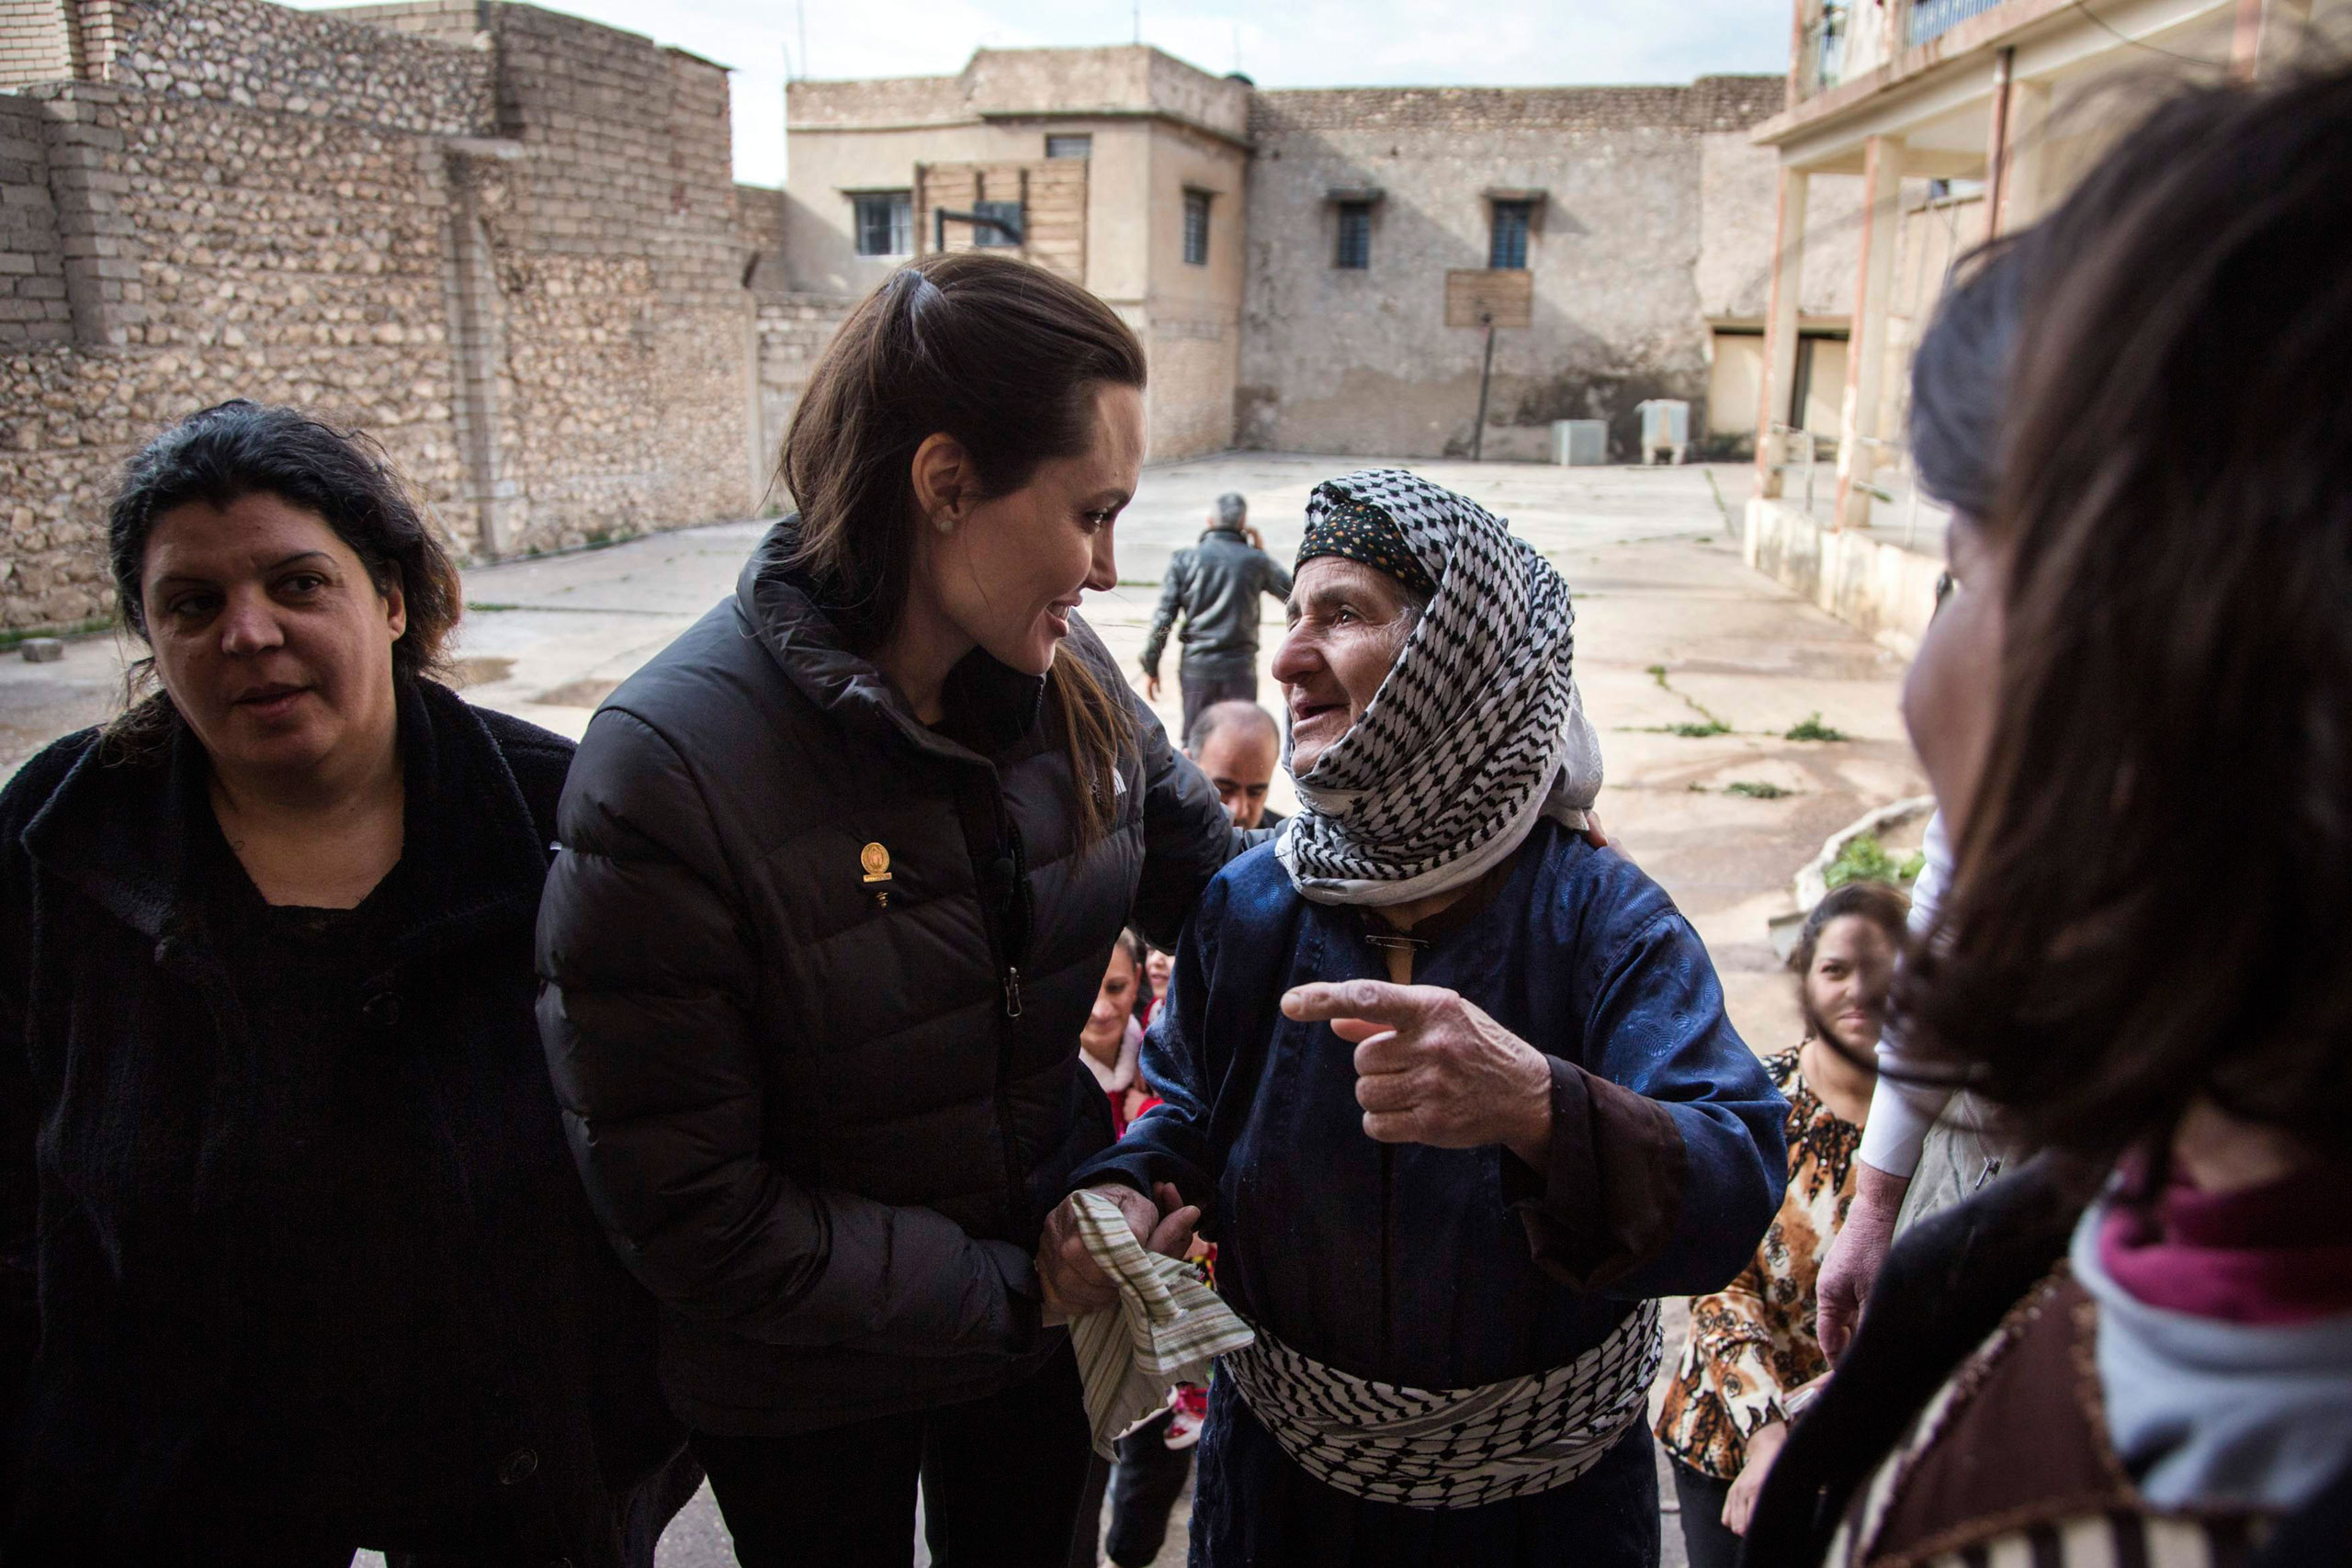 "United Nations High Commissioner for Refugees (UNHCR) Special Envoy Angelina Jolie meets displaced Iraqis who are members of the minority Christian community, living in an abandoned school in Al Qosh, northern Iraq on Jan. 26, 2015.  Jolie wrote <a href=""http://www.nytimes.com/2015/01/28/opinion/angelina-jolie-on-the-syrians-and-iraqis-who-cant-go-home.html?_r=1"">an Op-Ed</a> for the New York <i>Times</i> on the suffering she witnessed there."